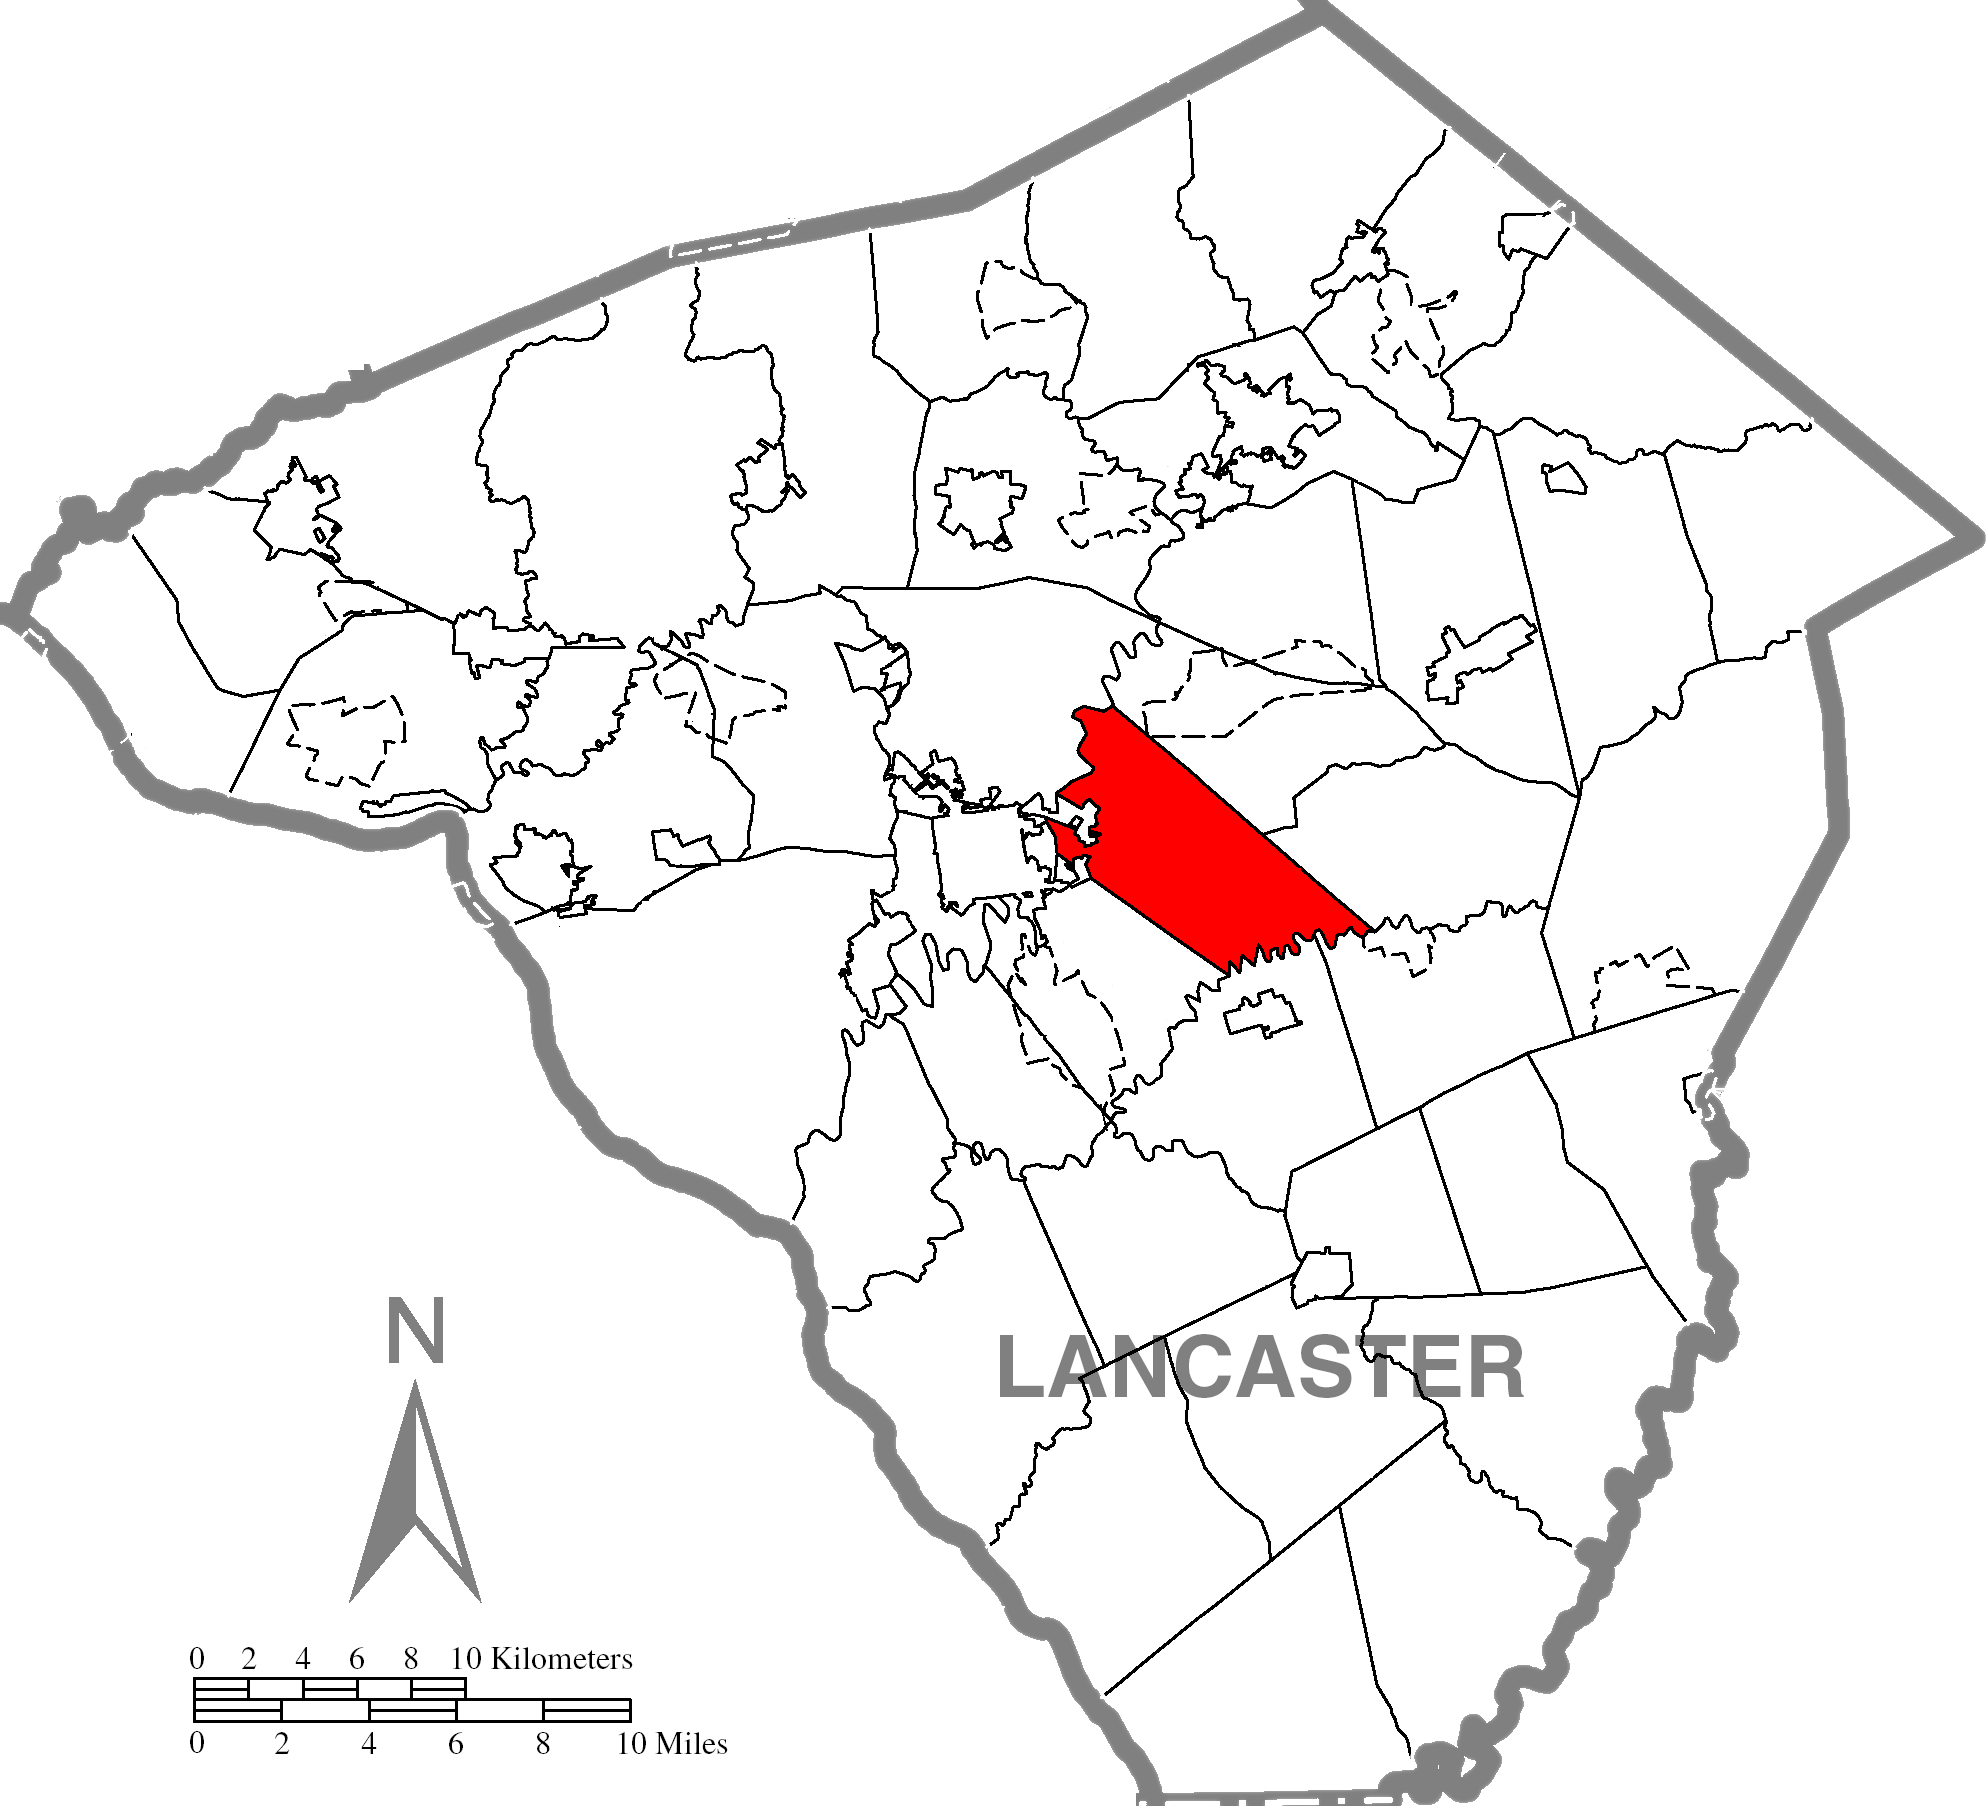 File:East Lampeter Township, Lancaster County Highlighted.png ... on lancaster county municipality map, lancaster twp, lancaster county municipalities, lancaster county school map, lancaster county history, lancaster county city map, lancaster county district map, lancaster county atlas, lancaster county sc map, lancaster county ne map, lancaster county church map, lancaster county convention center, lancaster county school districts, lancaster county municipal map, lancaster county zip codes, lancaster county land records, lancaster county zoning map, lancaster county river map, county of va counties map, york county pa zip code map,